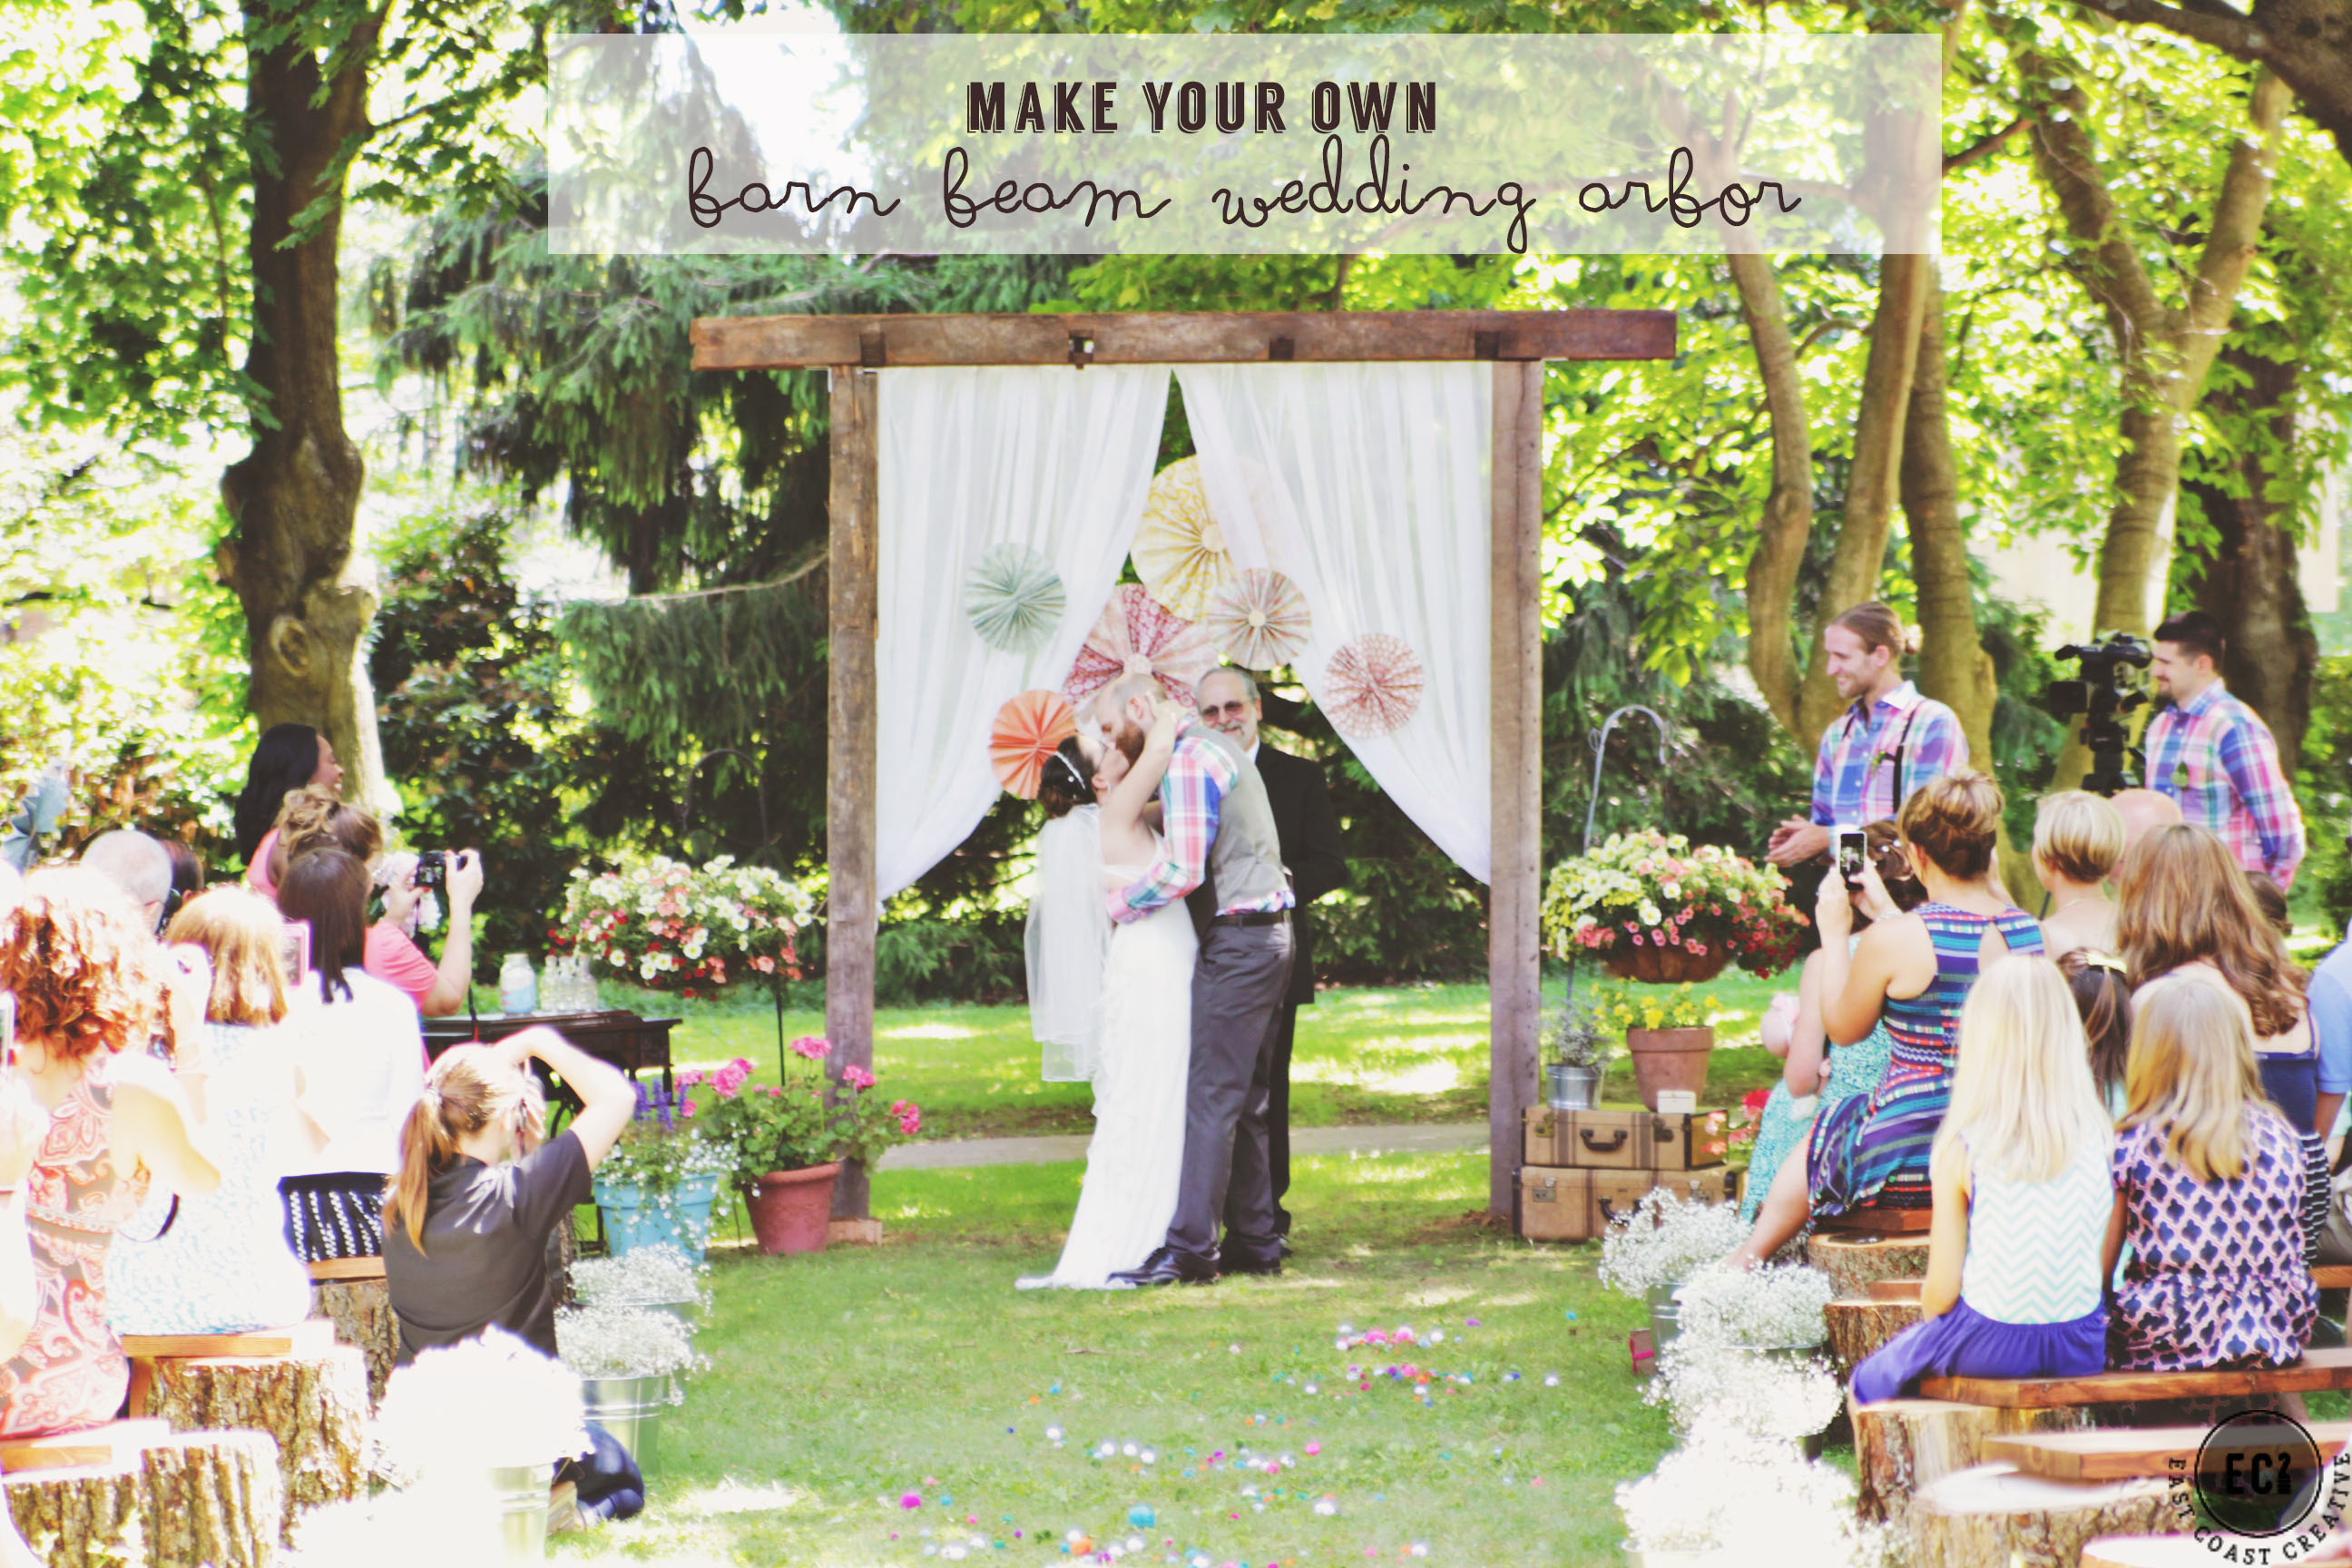 Diy Wedding Tips On A Budget Vintage Inspired Backyard Wedding intended for 15 Awesome Concepts of How to Upgrade Vintage Backyard Wedding Ideas